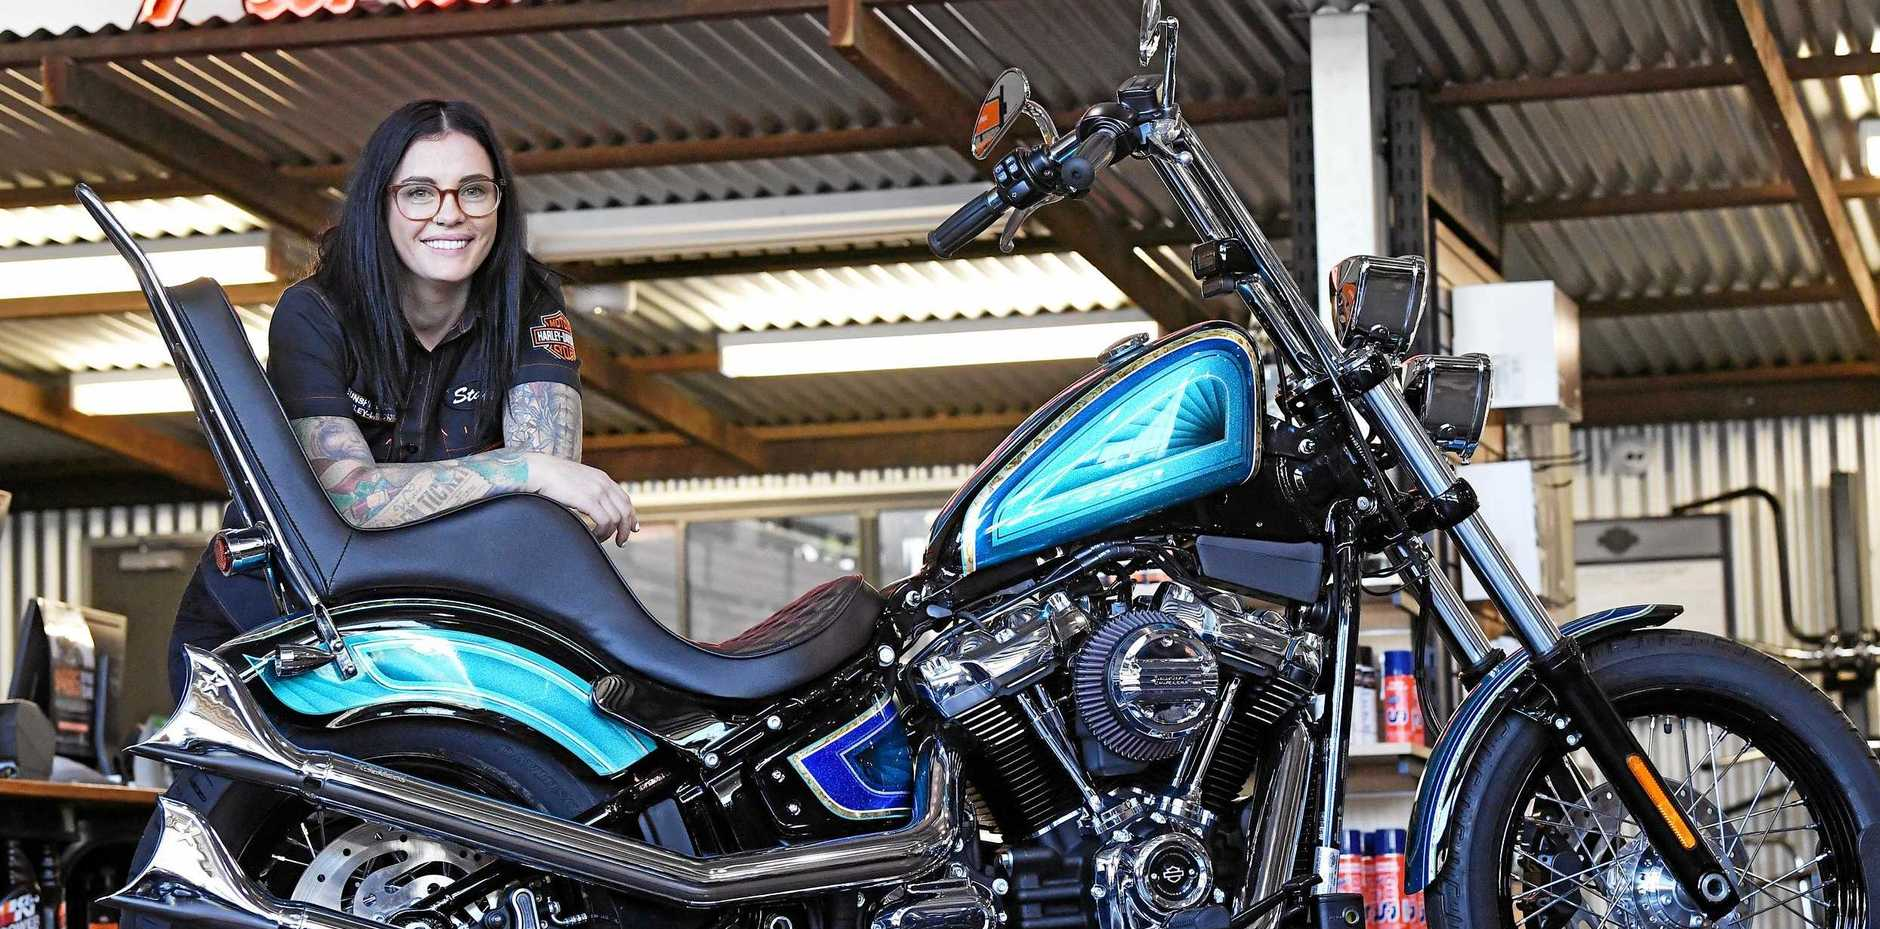 TAKING ON THE WORLD: Monique Dupen has built her own Harley, and is now entering the Battle of the Kings competitionfor customised Harley-Davidson motorbikes around the world.